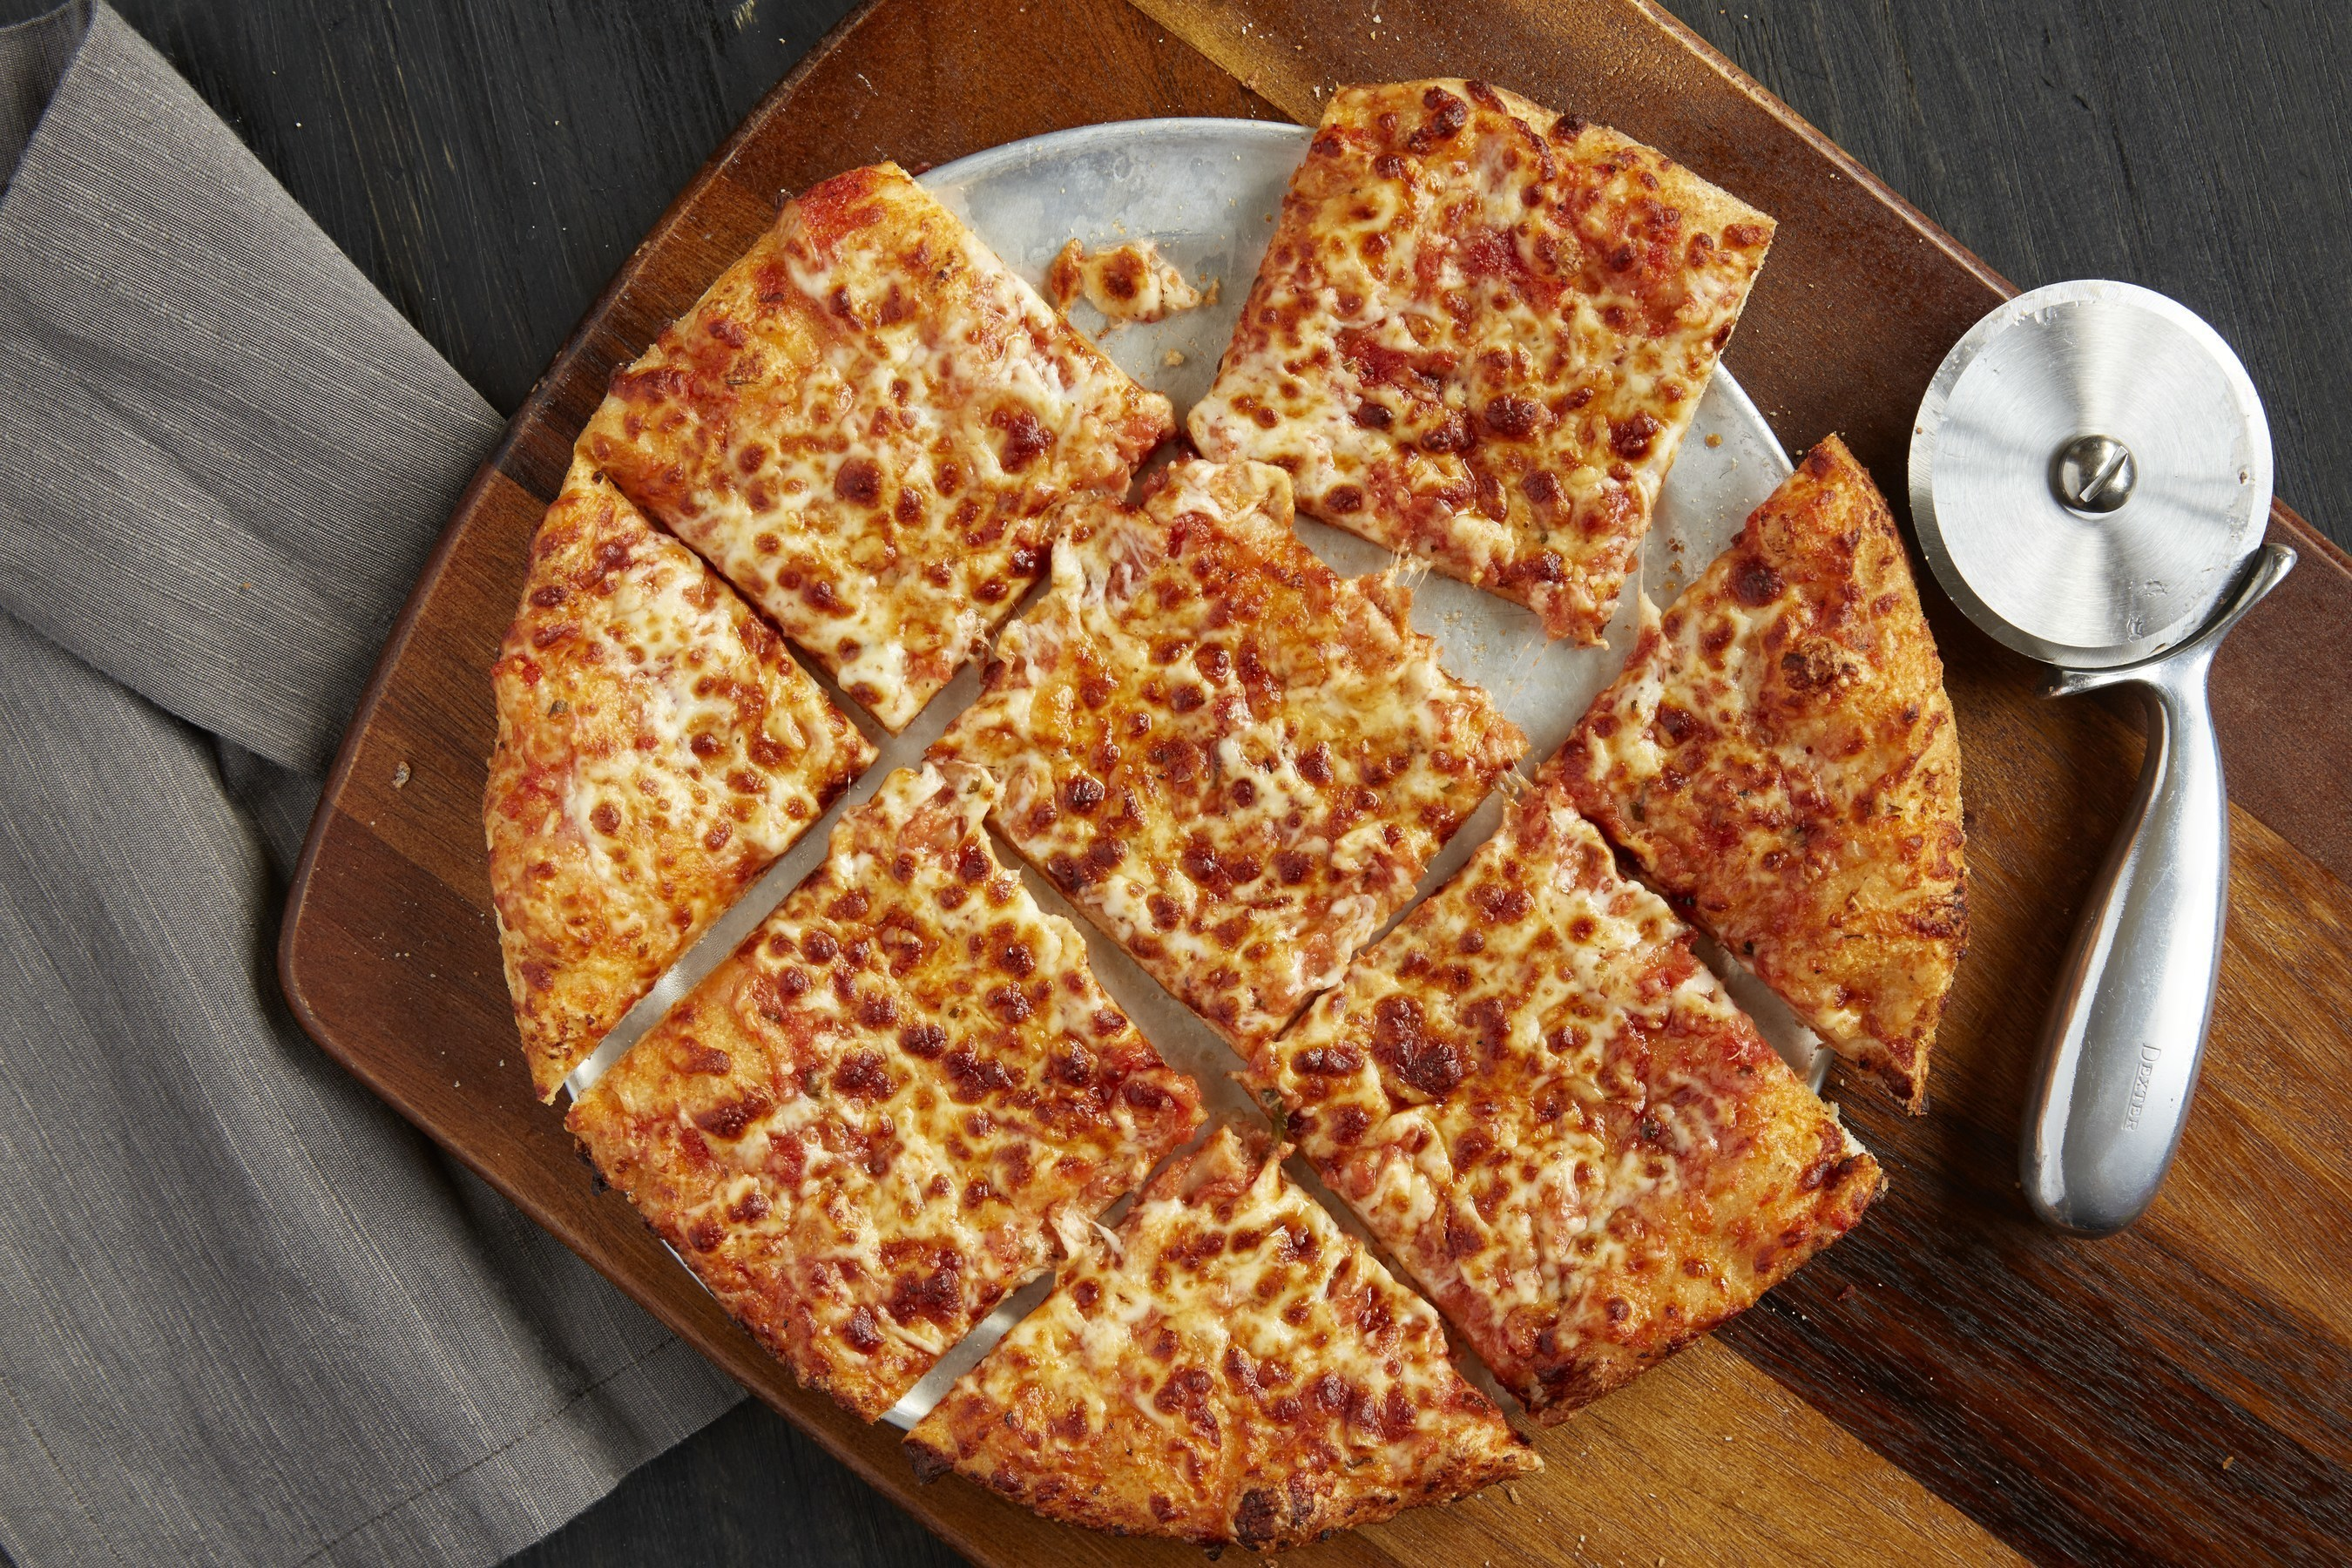 UNO Northside Cheese Thin Crust Pizza:  A blend of mozzarella, aged cheddar, Romano cheese and tomato sauce.